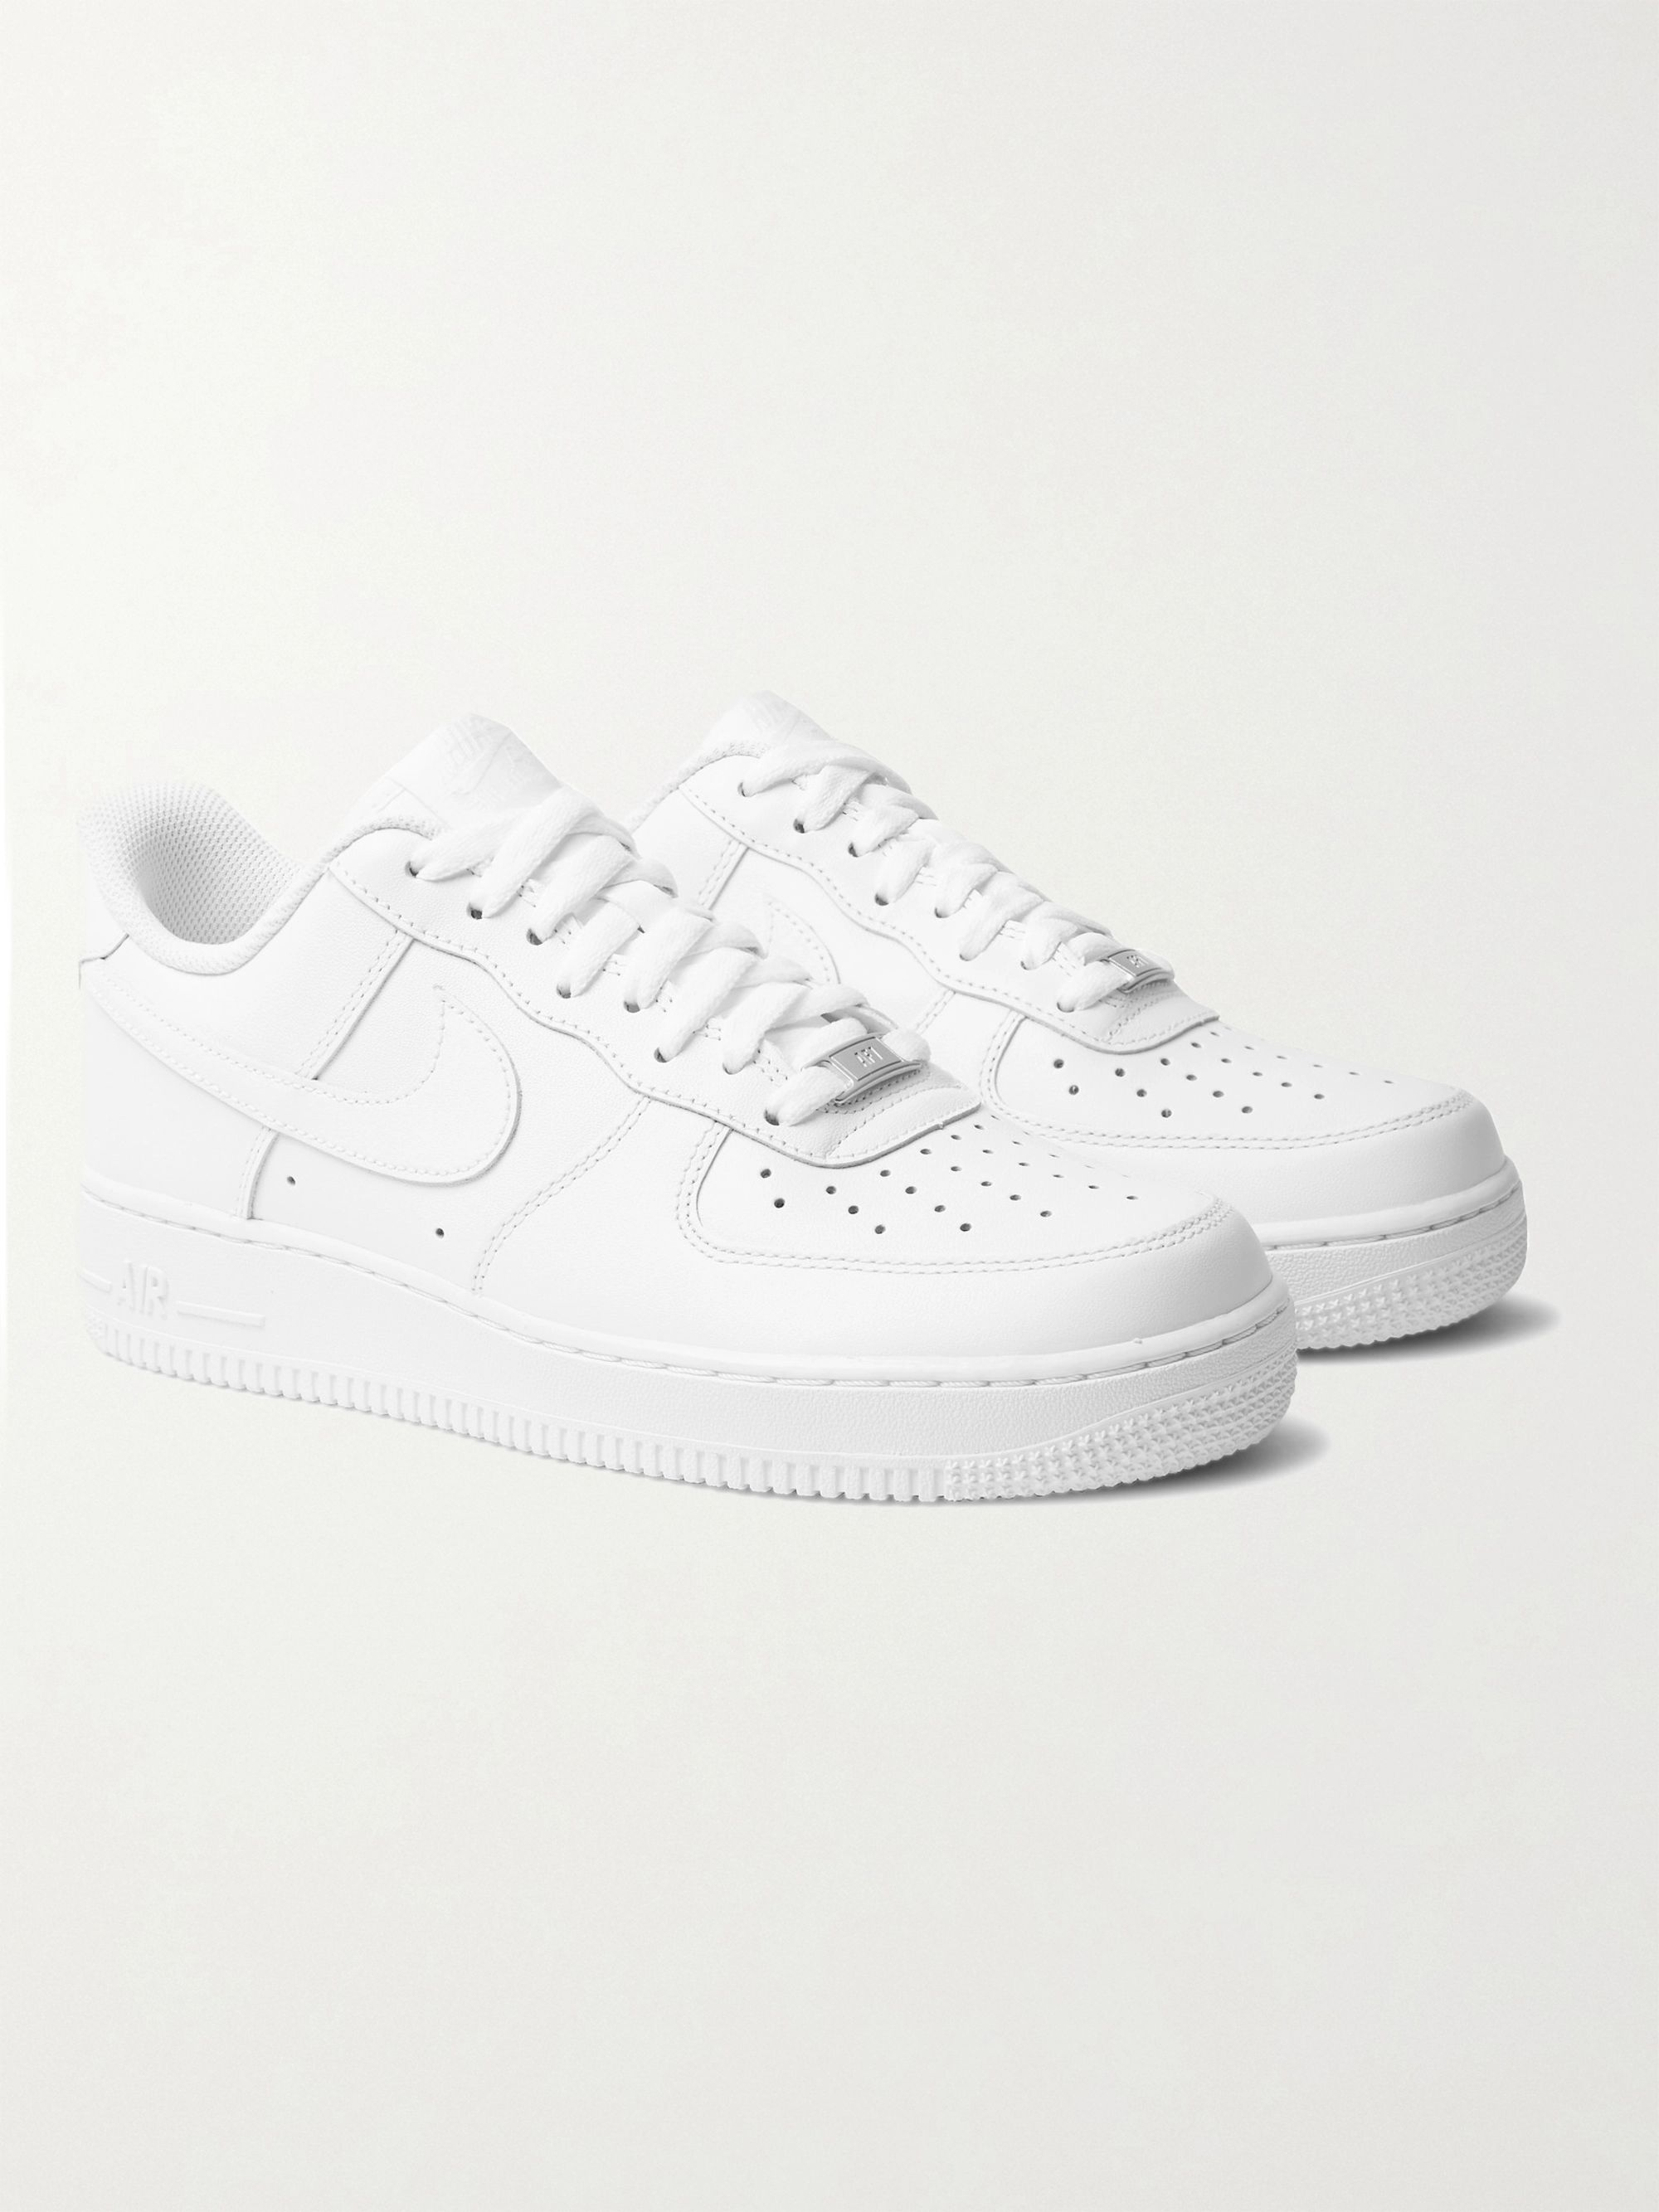 2air force 1 07